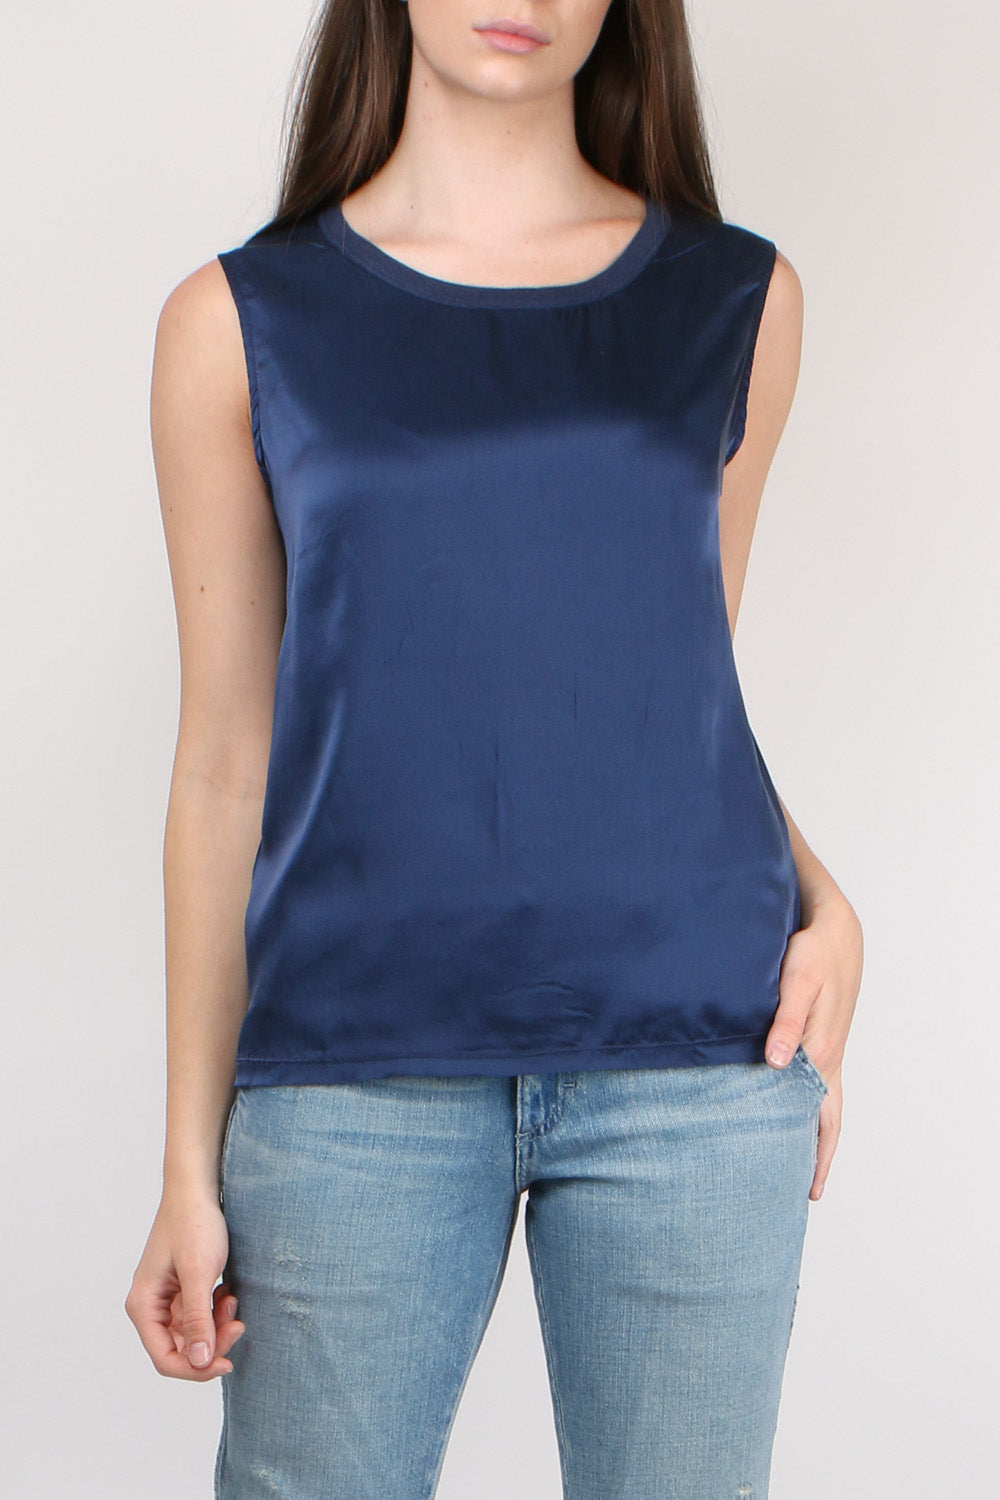 Majestic Filatures Sleeveless Crew with Back Knot